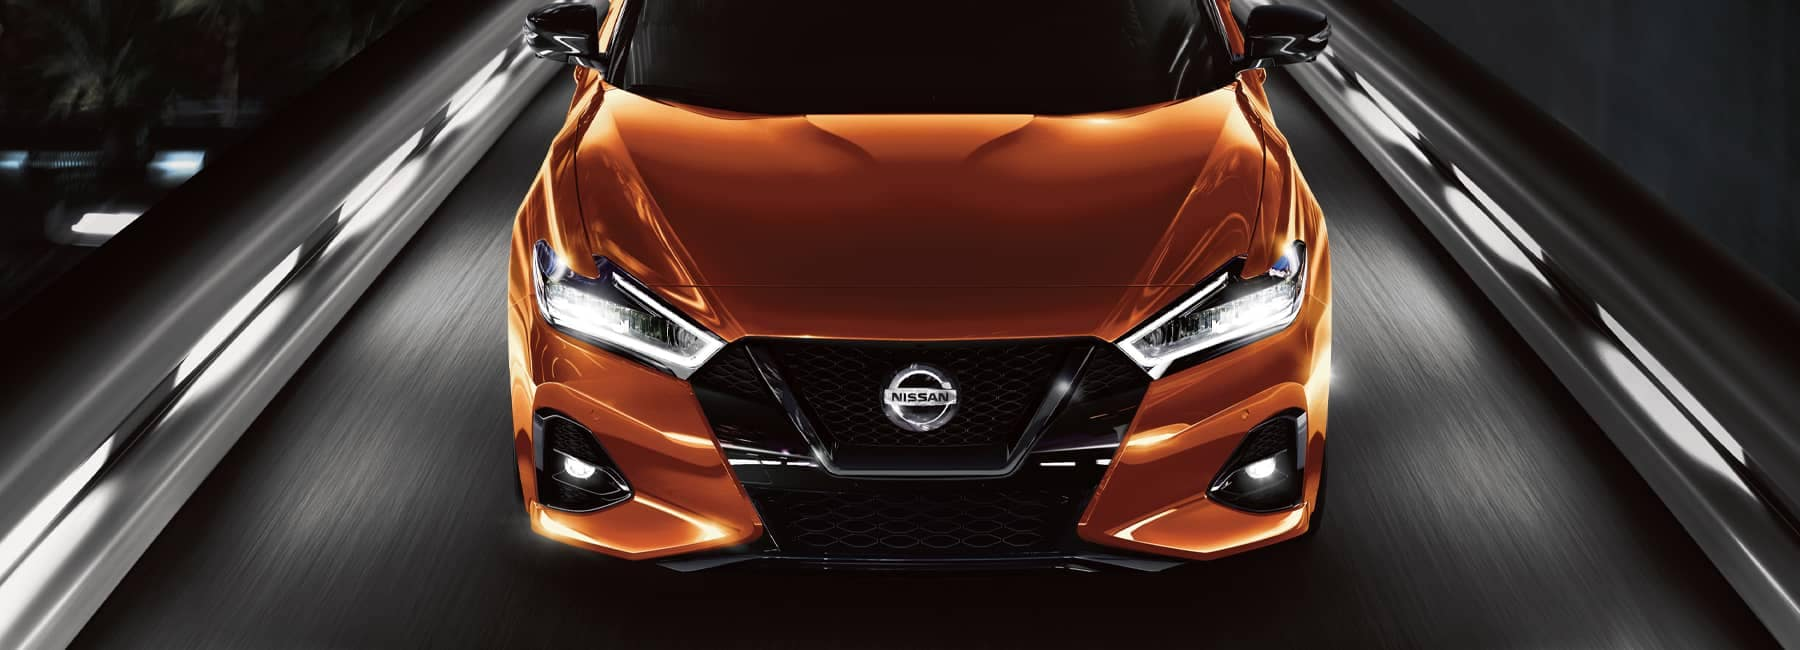 Front angle shot of a 2021 orange Nissan Maxima at night